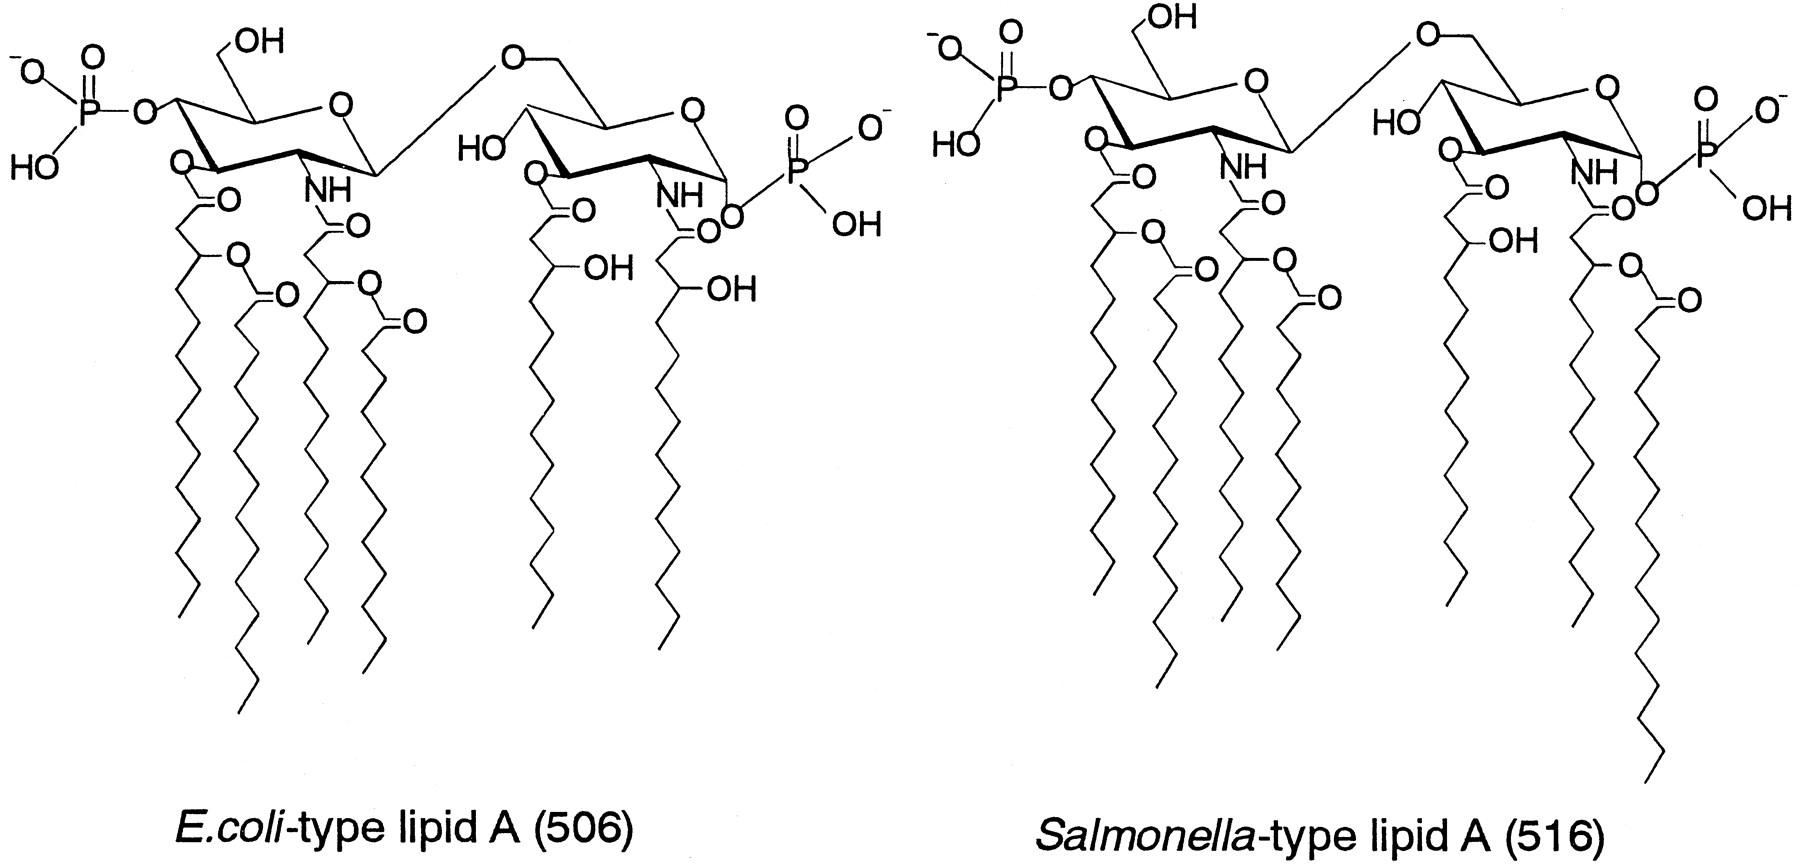 Salmonella Type Heptaacylated Lipid A Is Inactive And Acts As An Antagonist Of